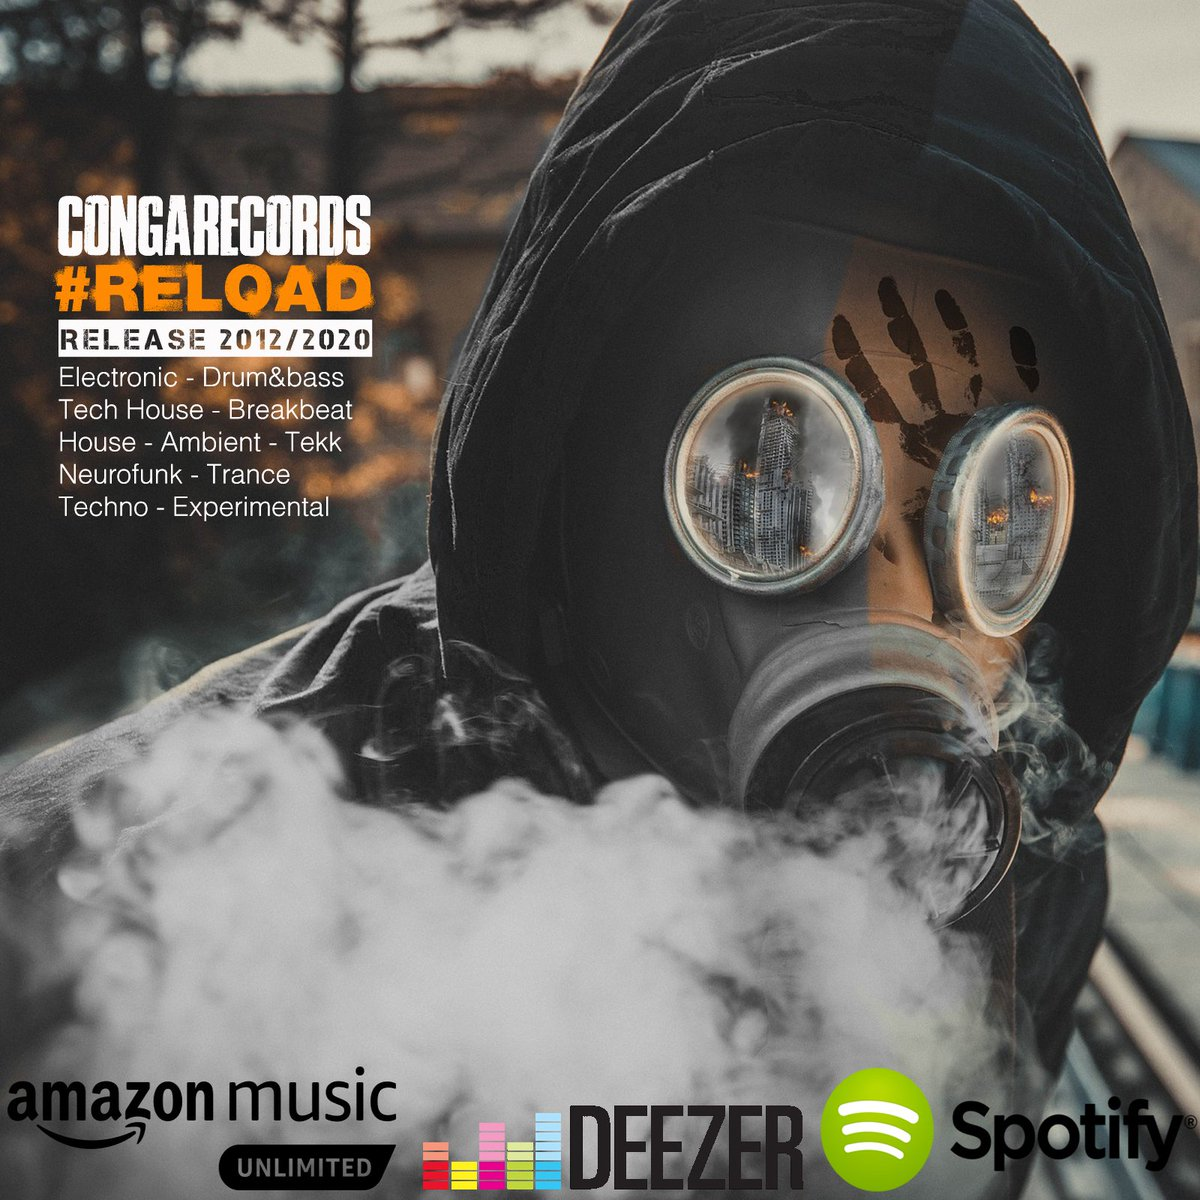 Congarecords release 2012 / 2020 playlist.  Listen on Spotify,Deezer and Amazon music  Congarecords #reload   #electronicmusic #drumnbass #neurofunk #house #congarecords #spotify #reload #edm #experimental #playlist #release #electronicmusic #amazonmusic #deezer https://t.co/Jny0zAqfxP